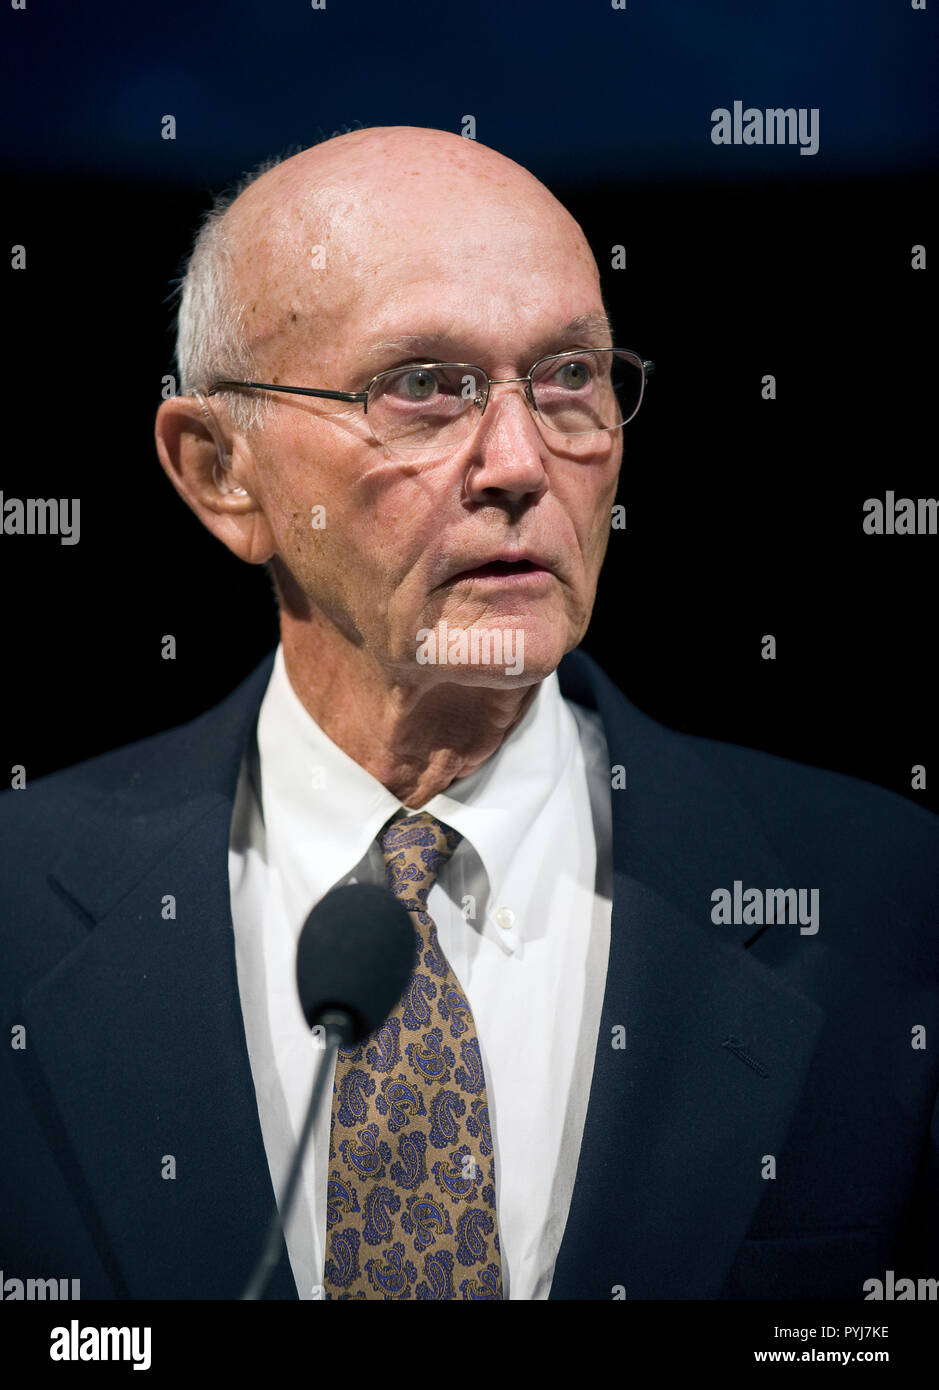 On the eve of the fortieth anniversary of Apollo 11's first human landing on the Moon, Apollo 11 crew member, Michael Collins speaks during a lecture in honor of Apollo 11 at the National Air and Space Museum in Washington, Sunday, July 19, 2009 (NASA/Bill Ingalls) - Stock Image